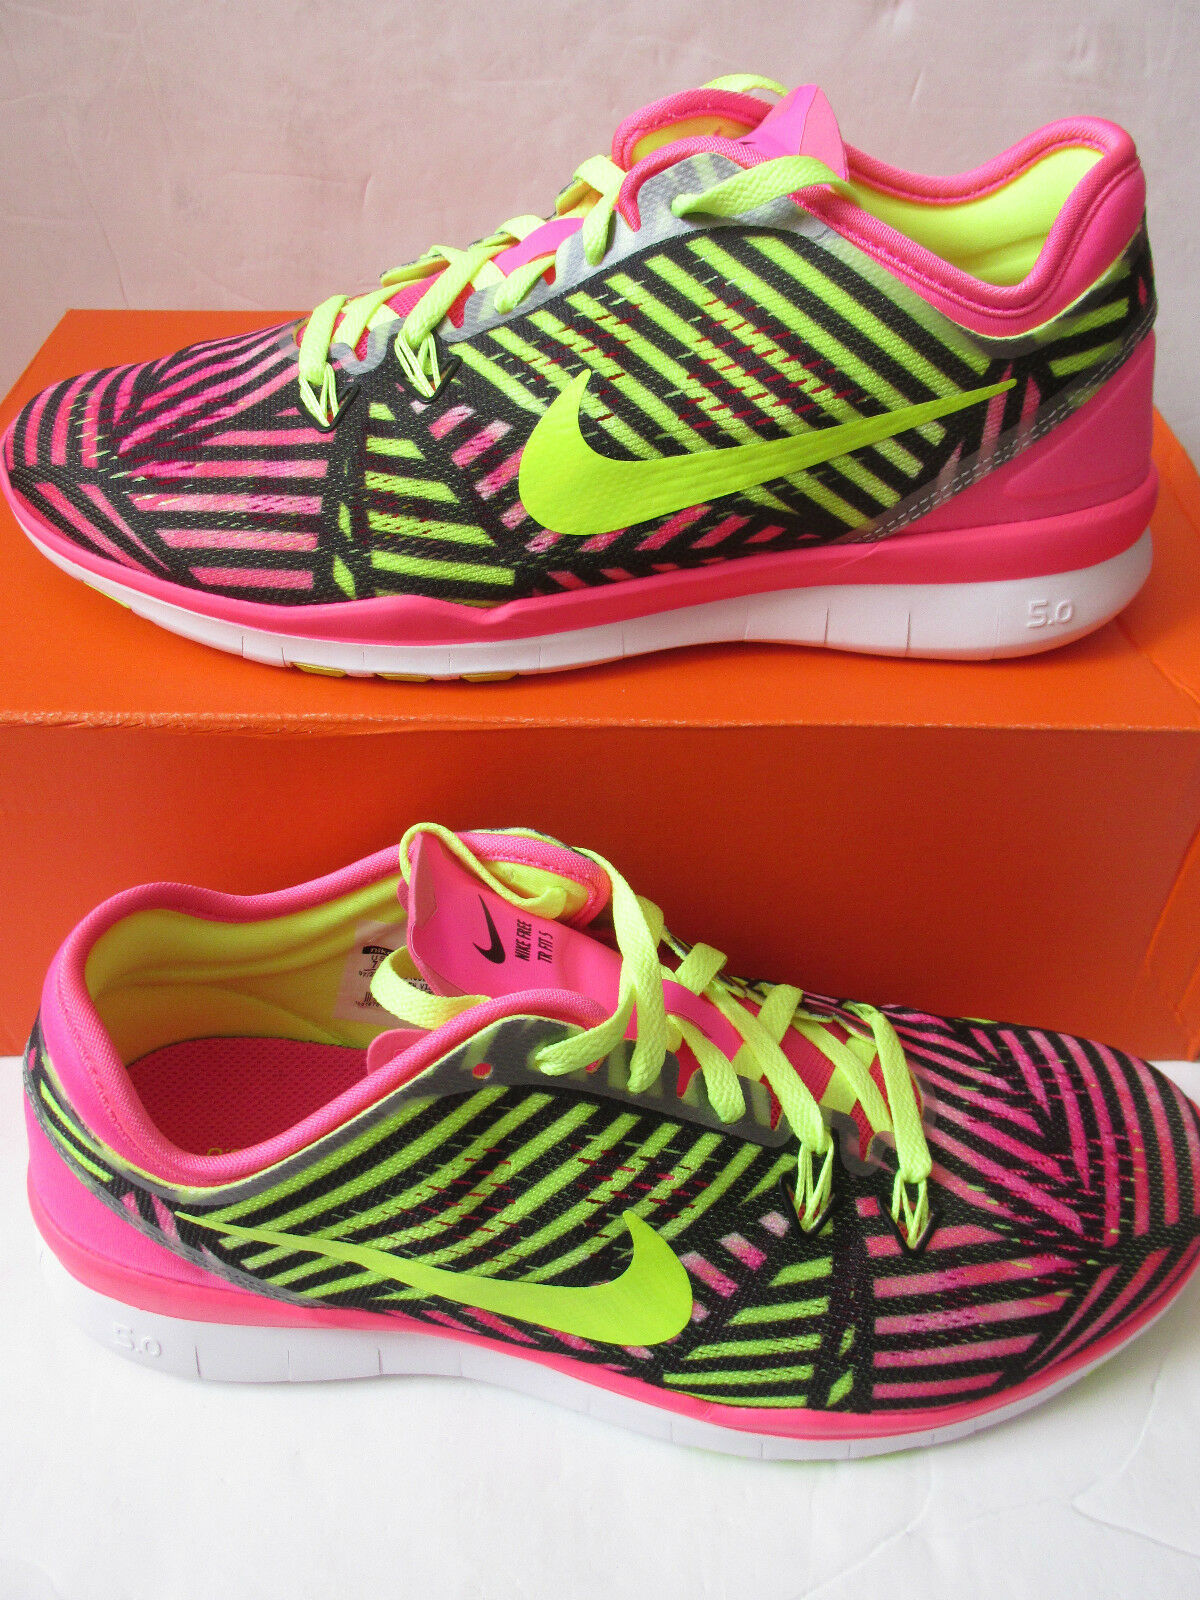 separation shoes d810d bd26e nike Femme free 600 5.0 TR FIT 5 PRT running trainers 704695 600 free  Baskets chaussures